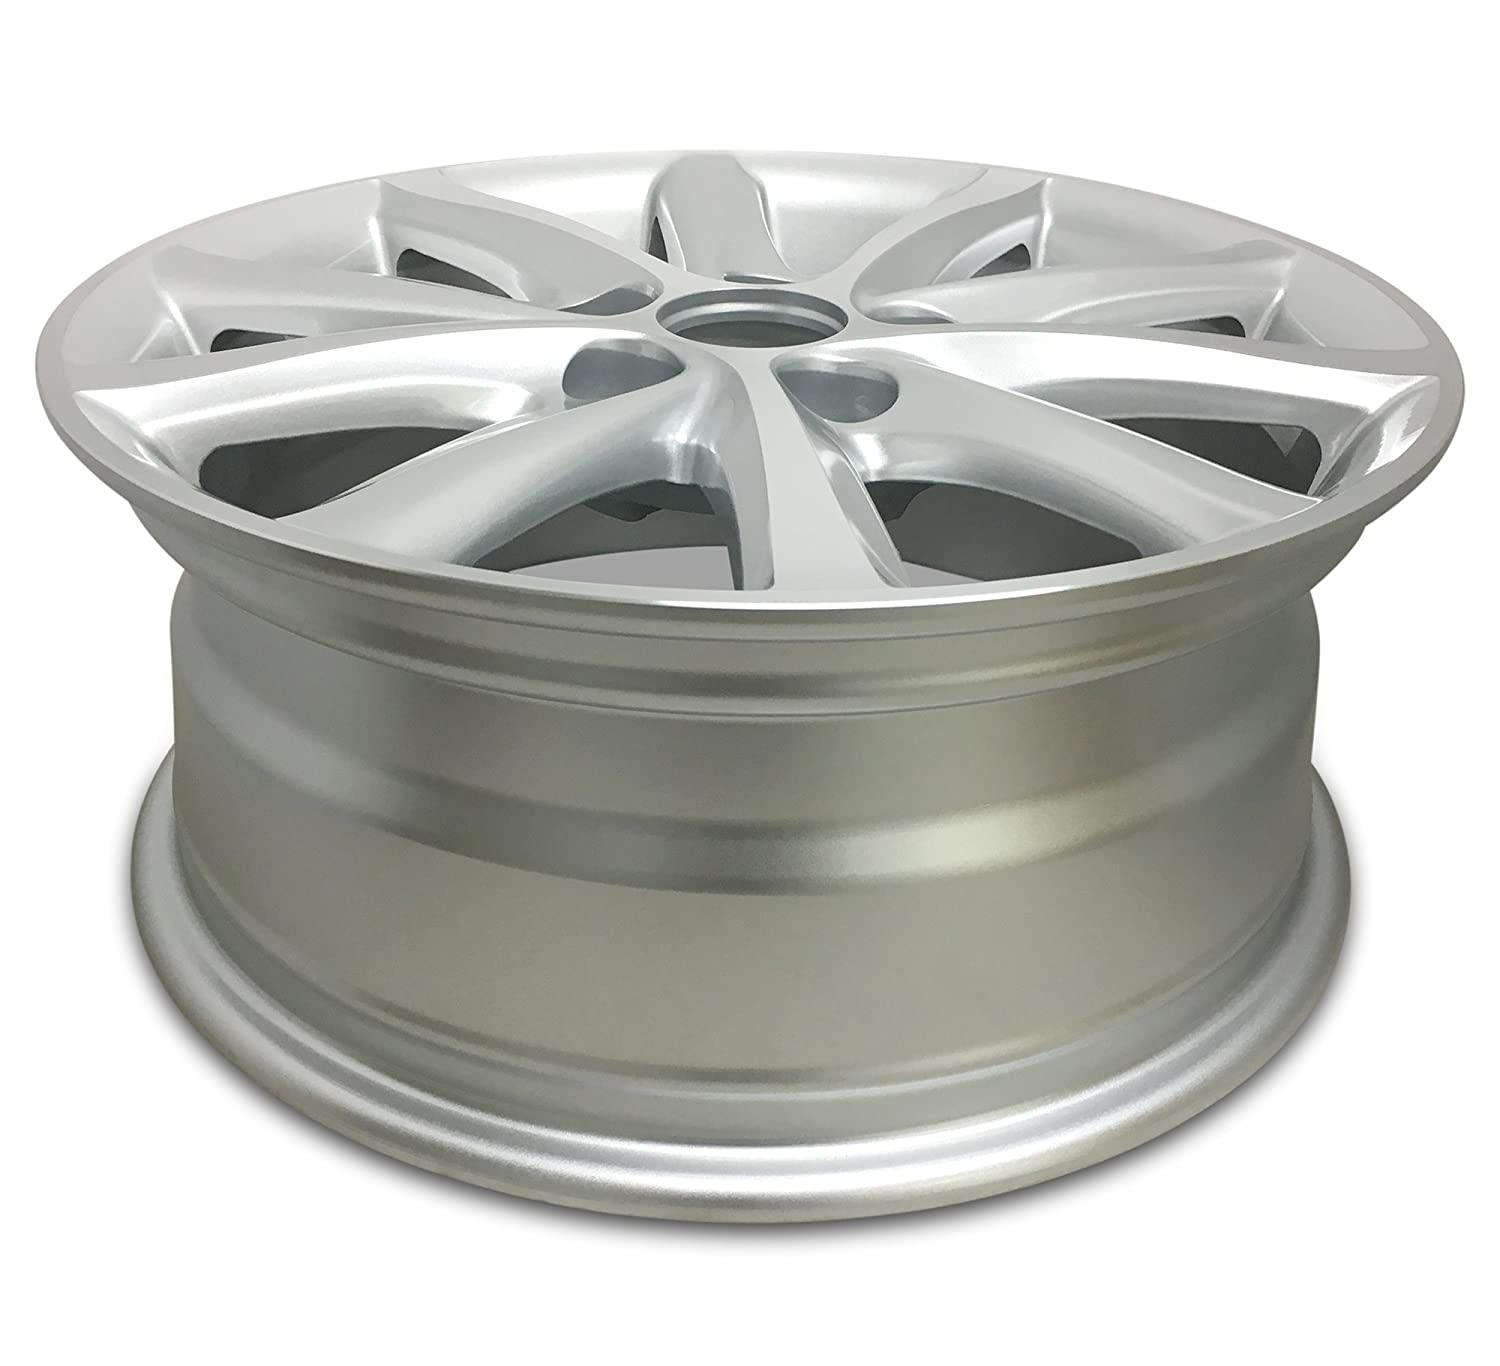 Road Ready Car Wheel For 2010-2011 Toyota Camry 16 Inch 5 Lug chrome Aluminum Rim Fits R16 Tire Exact OEM Replacement Full-Size Spare